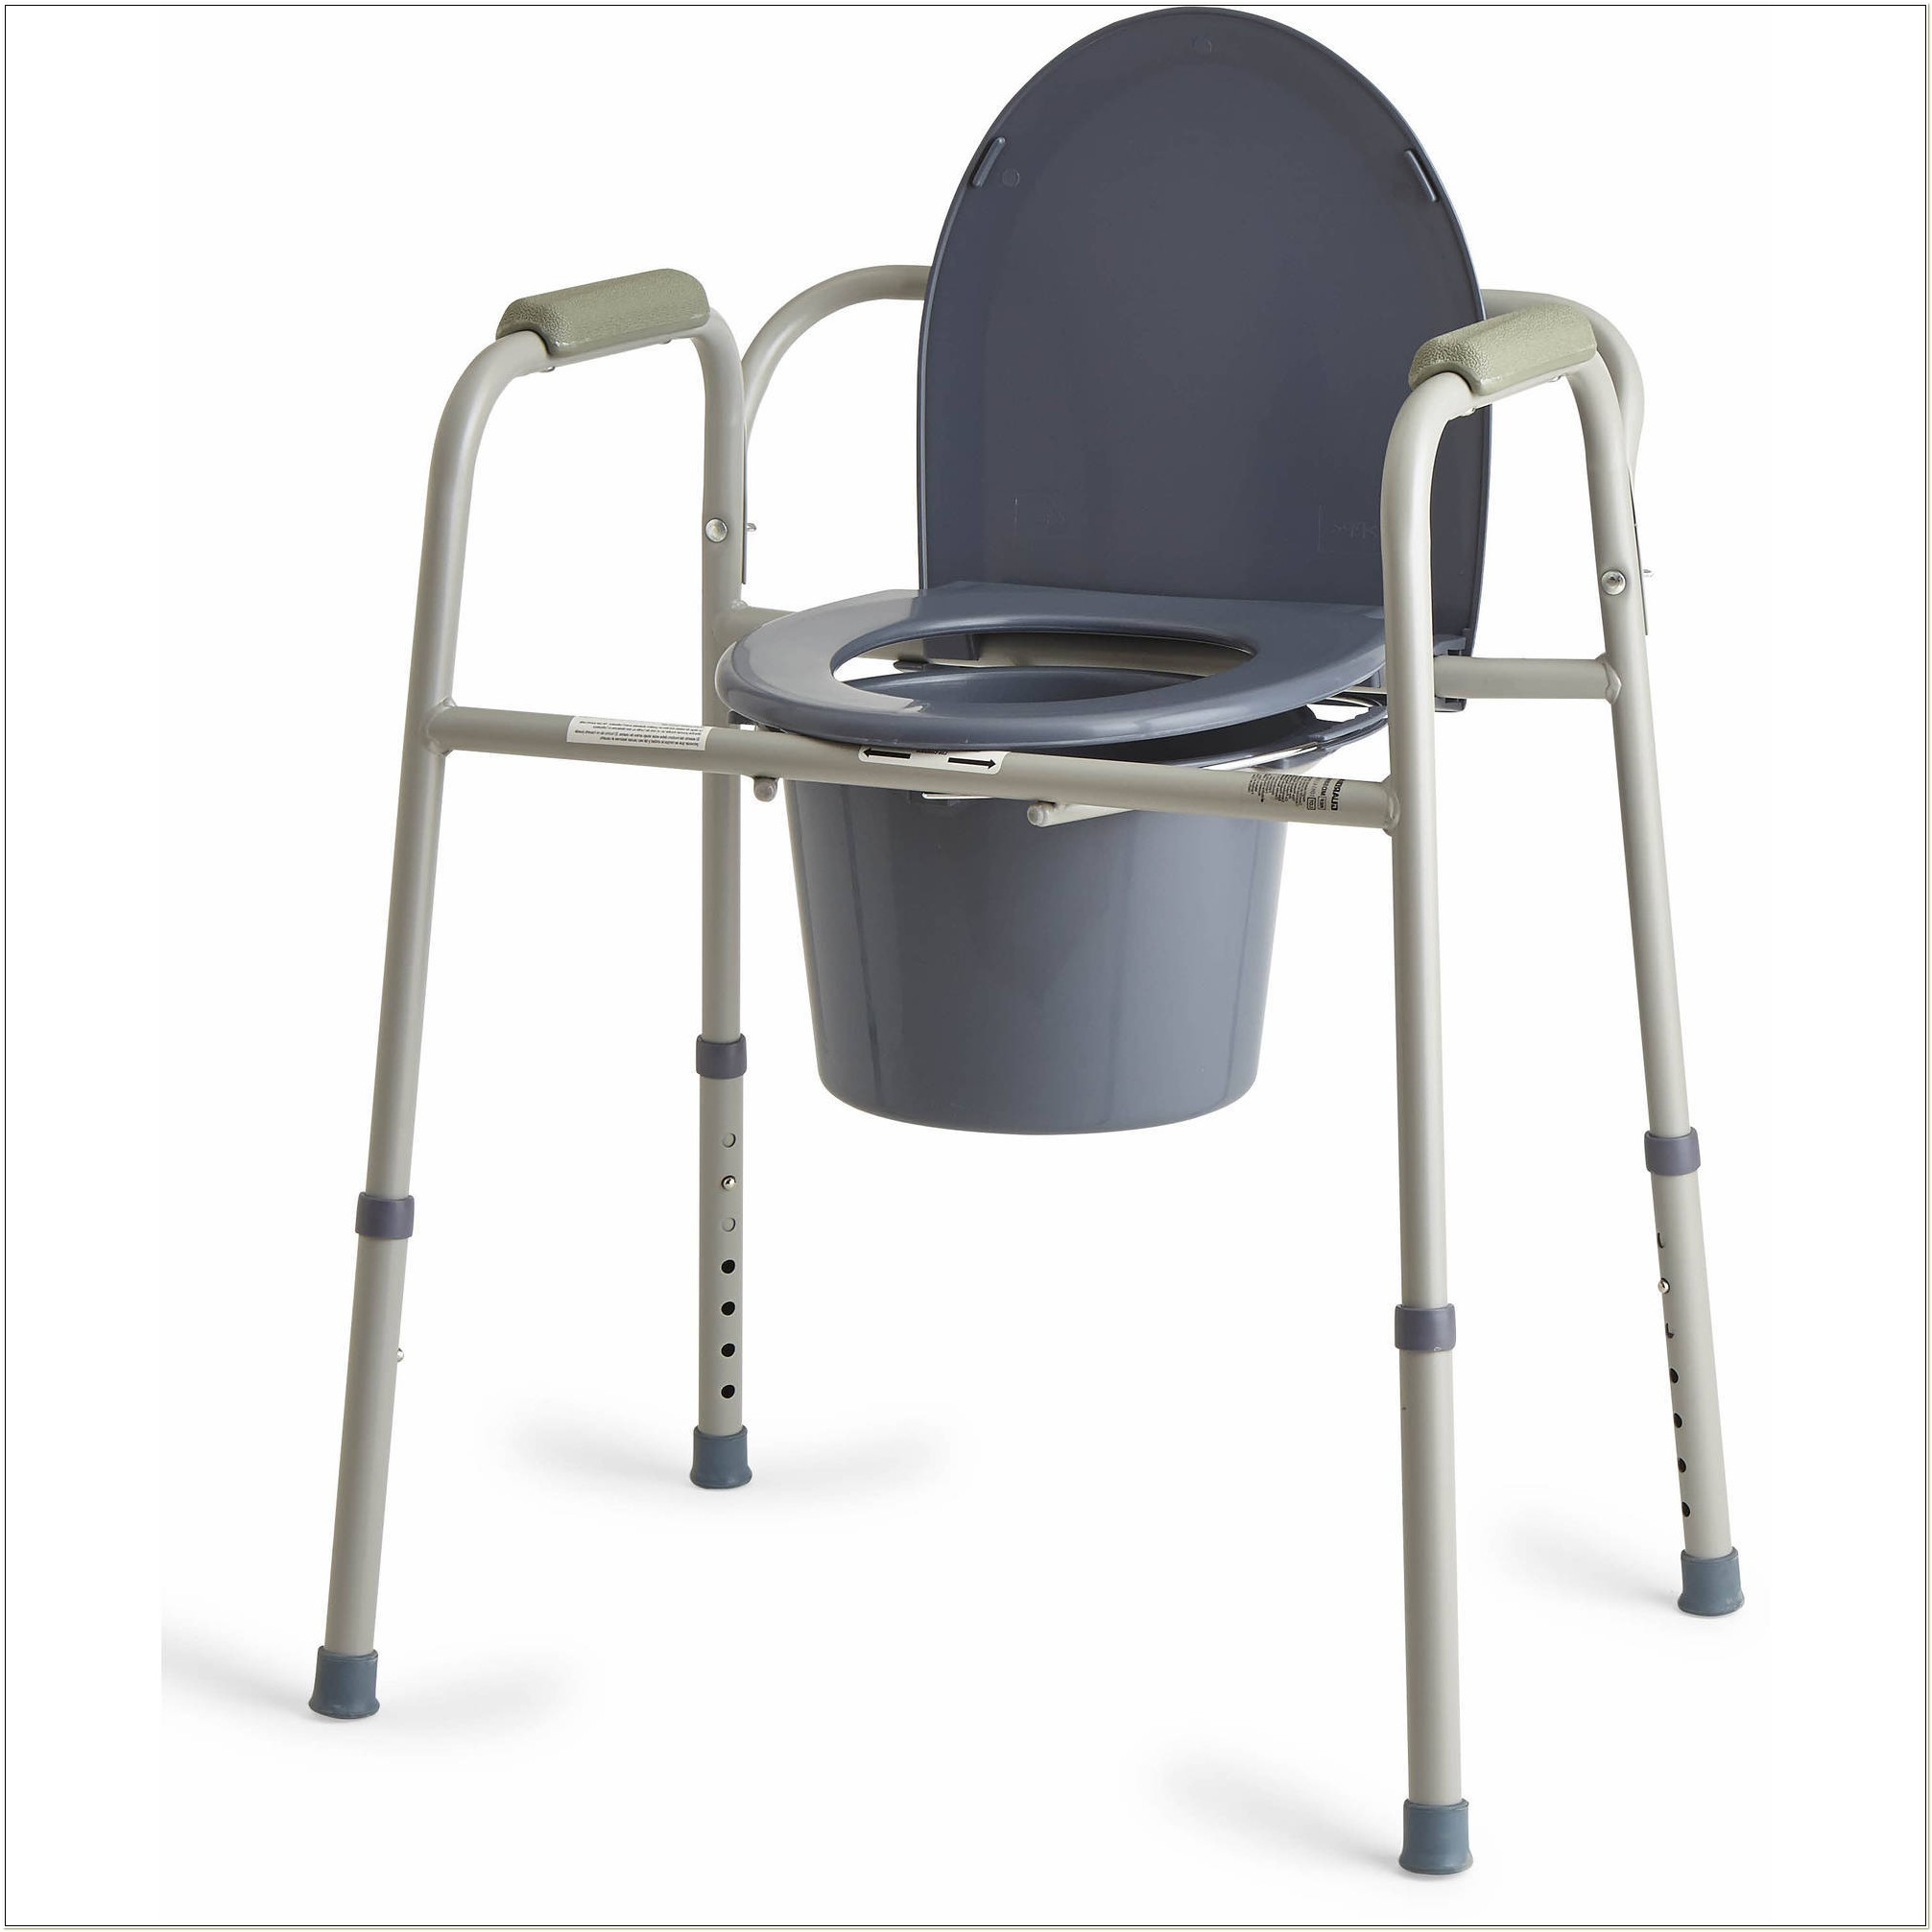 Bath Chairs For Adults Walmart